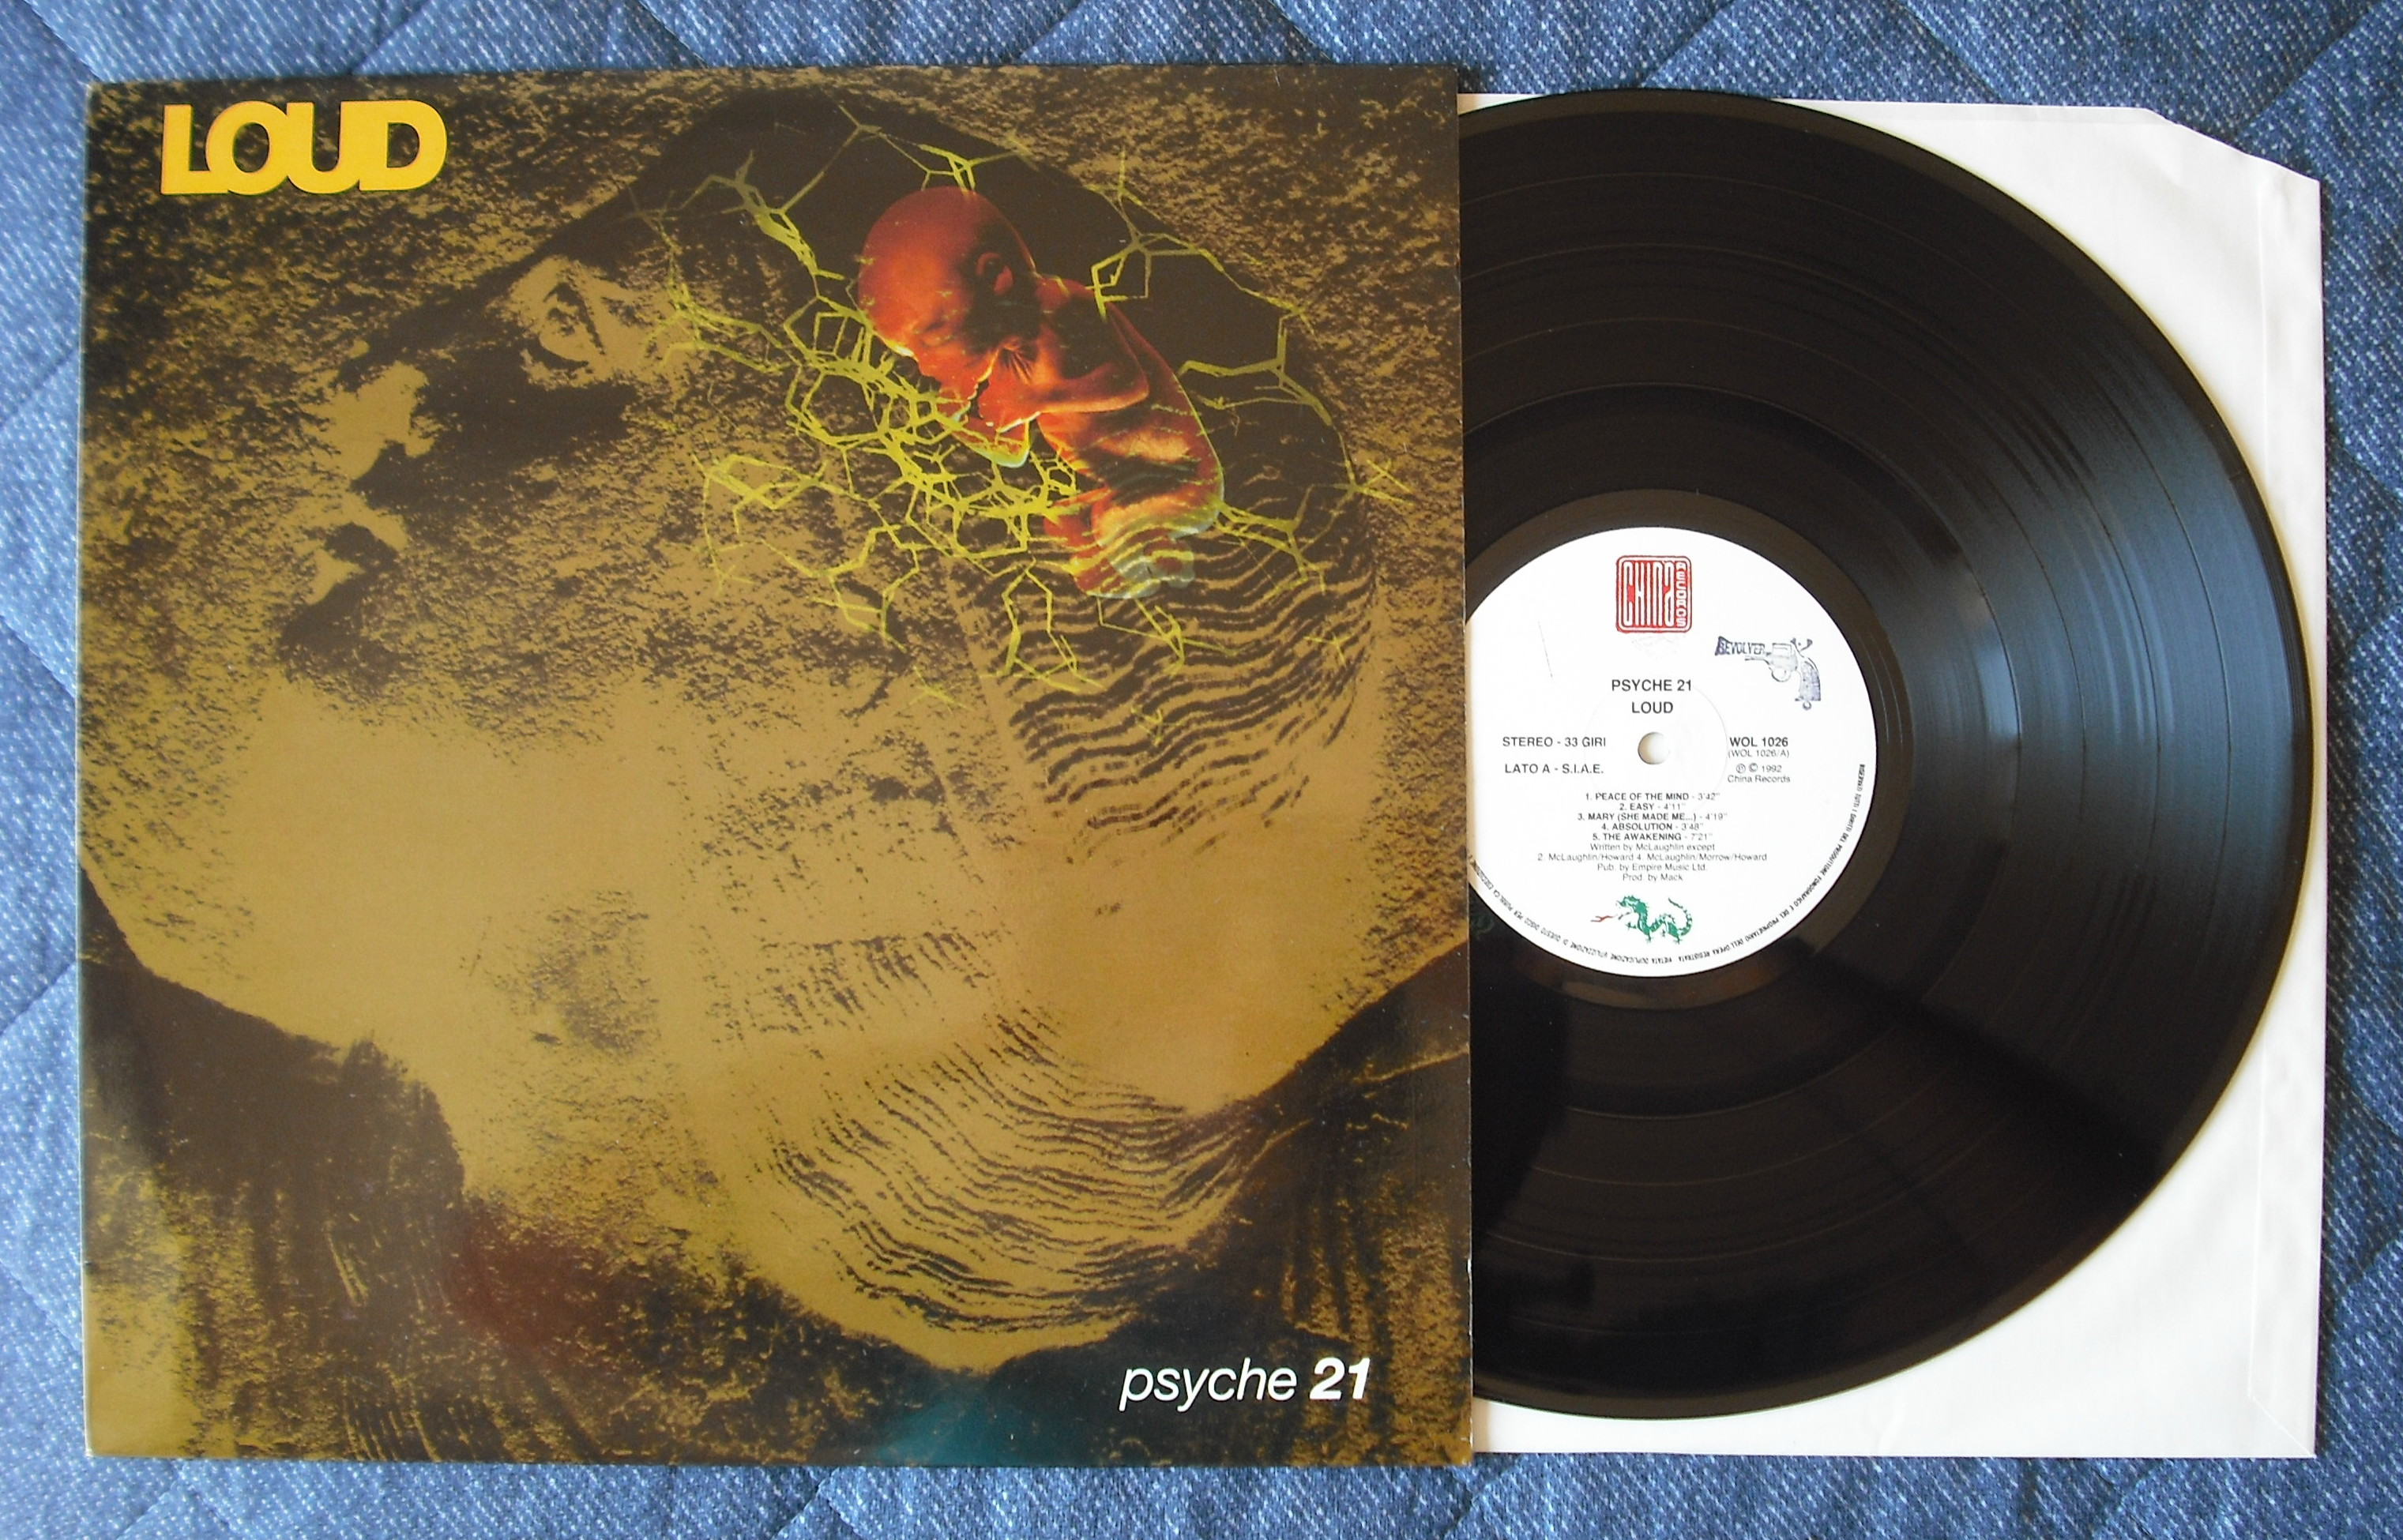 Loud - Psyche 21 Single